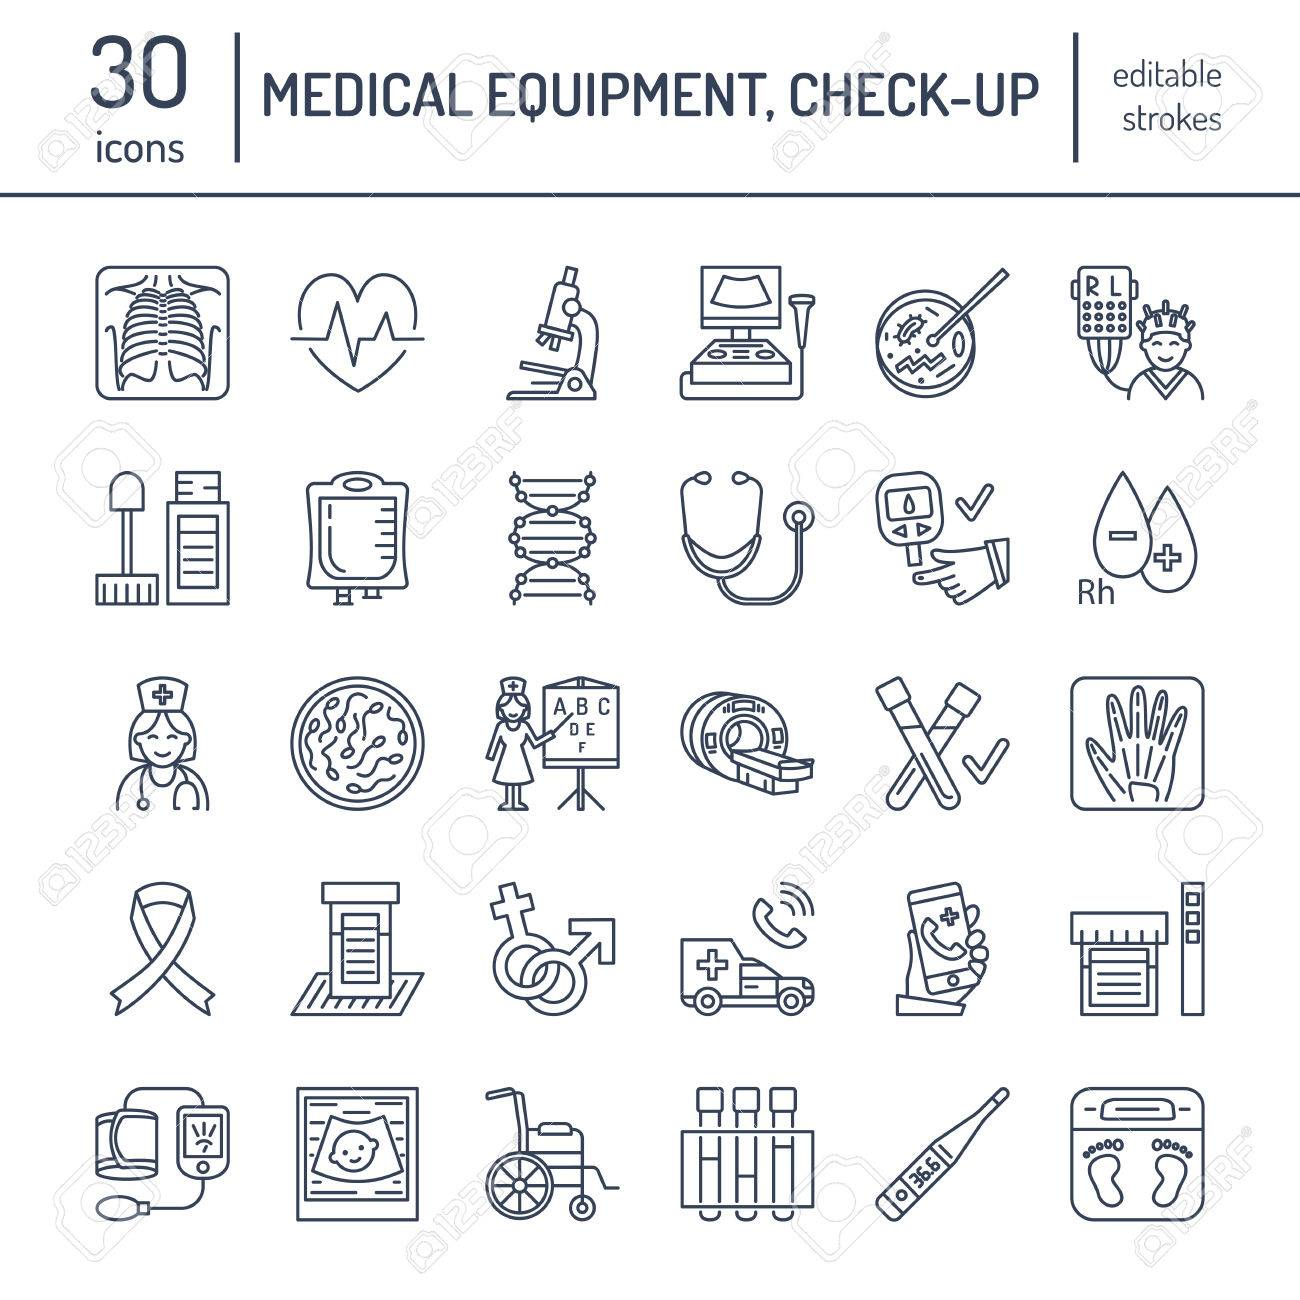 Vector thin line icon of medical equipment, research. Medical check-up, test elements - MRI, xray, glucometer, blood pressure, laboratory. Linear pictogram with editable stroke for clinic, hospital. - 66482587